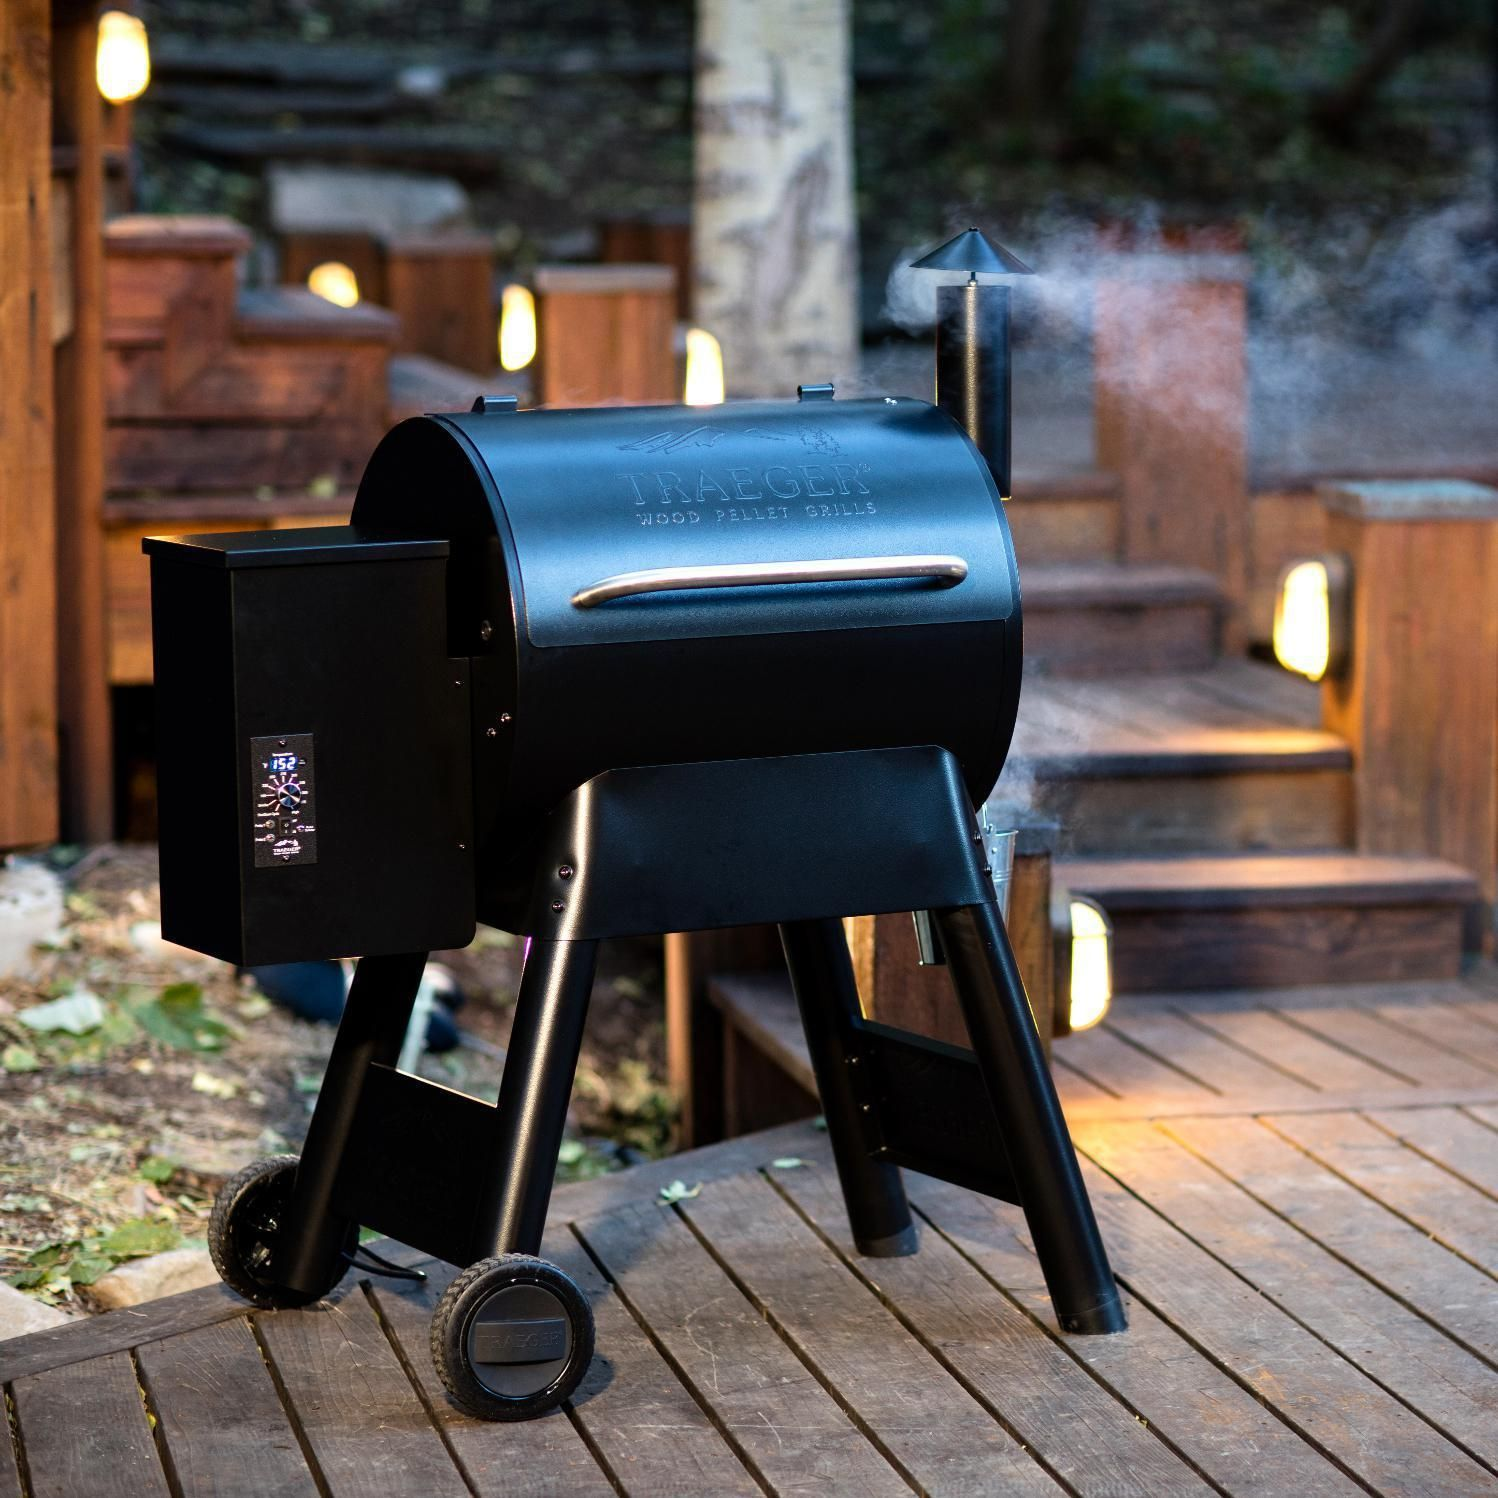 Traeger Pro Series 22 Pellet Grill On Cart Take Your Wood Fired Cooking Skills To The Next Level With The Pro Ser Pellet Grill Wood Pellet Grills Traeger Grill